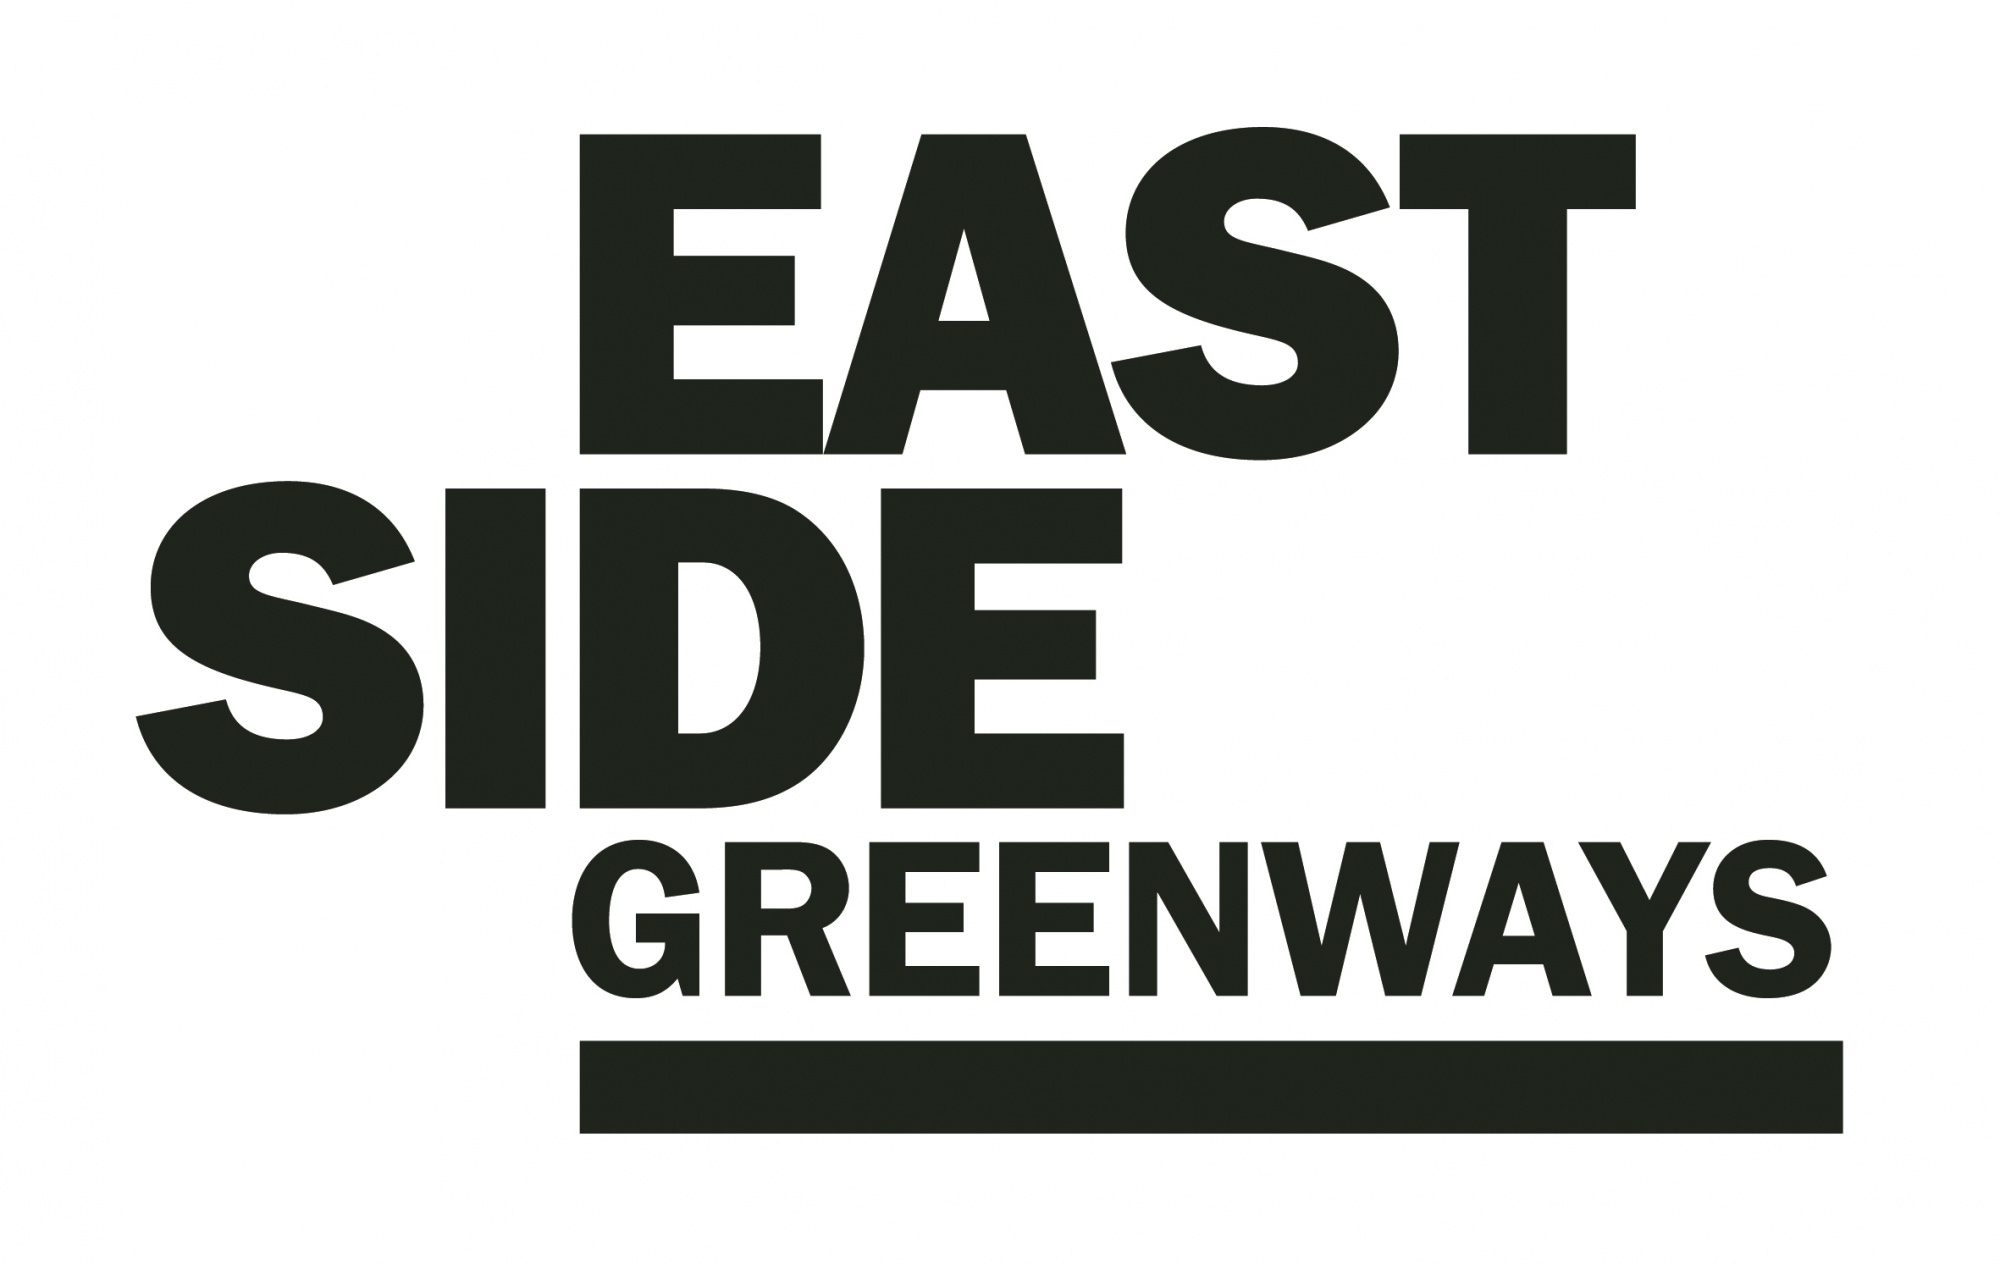 EastSide Greenways